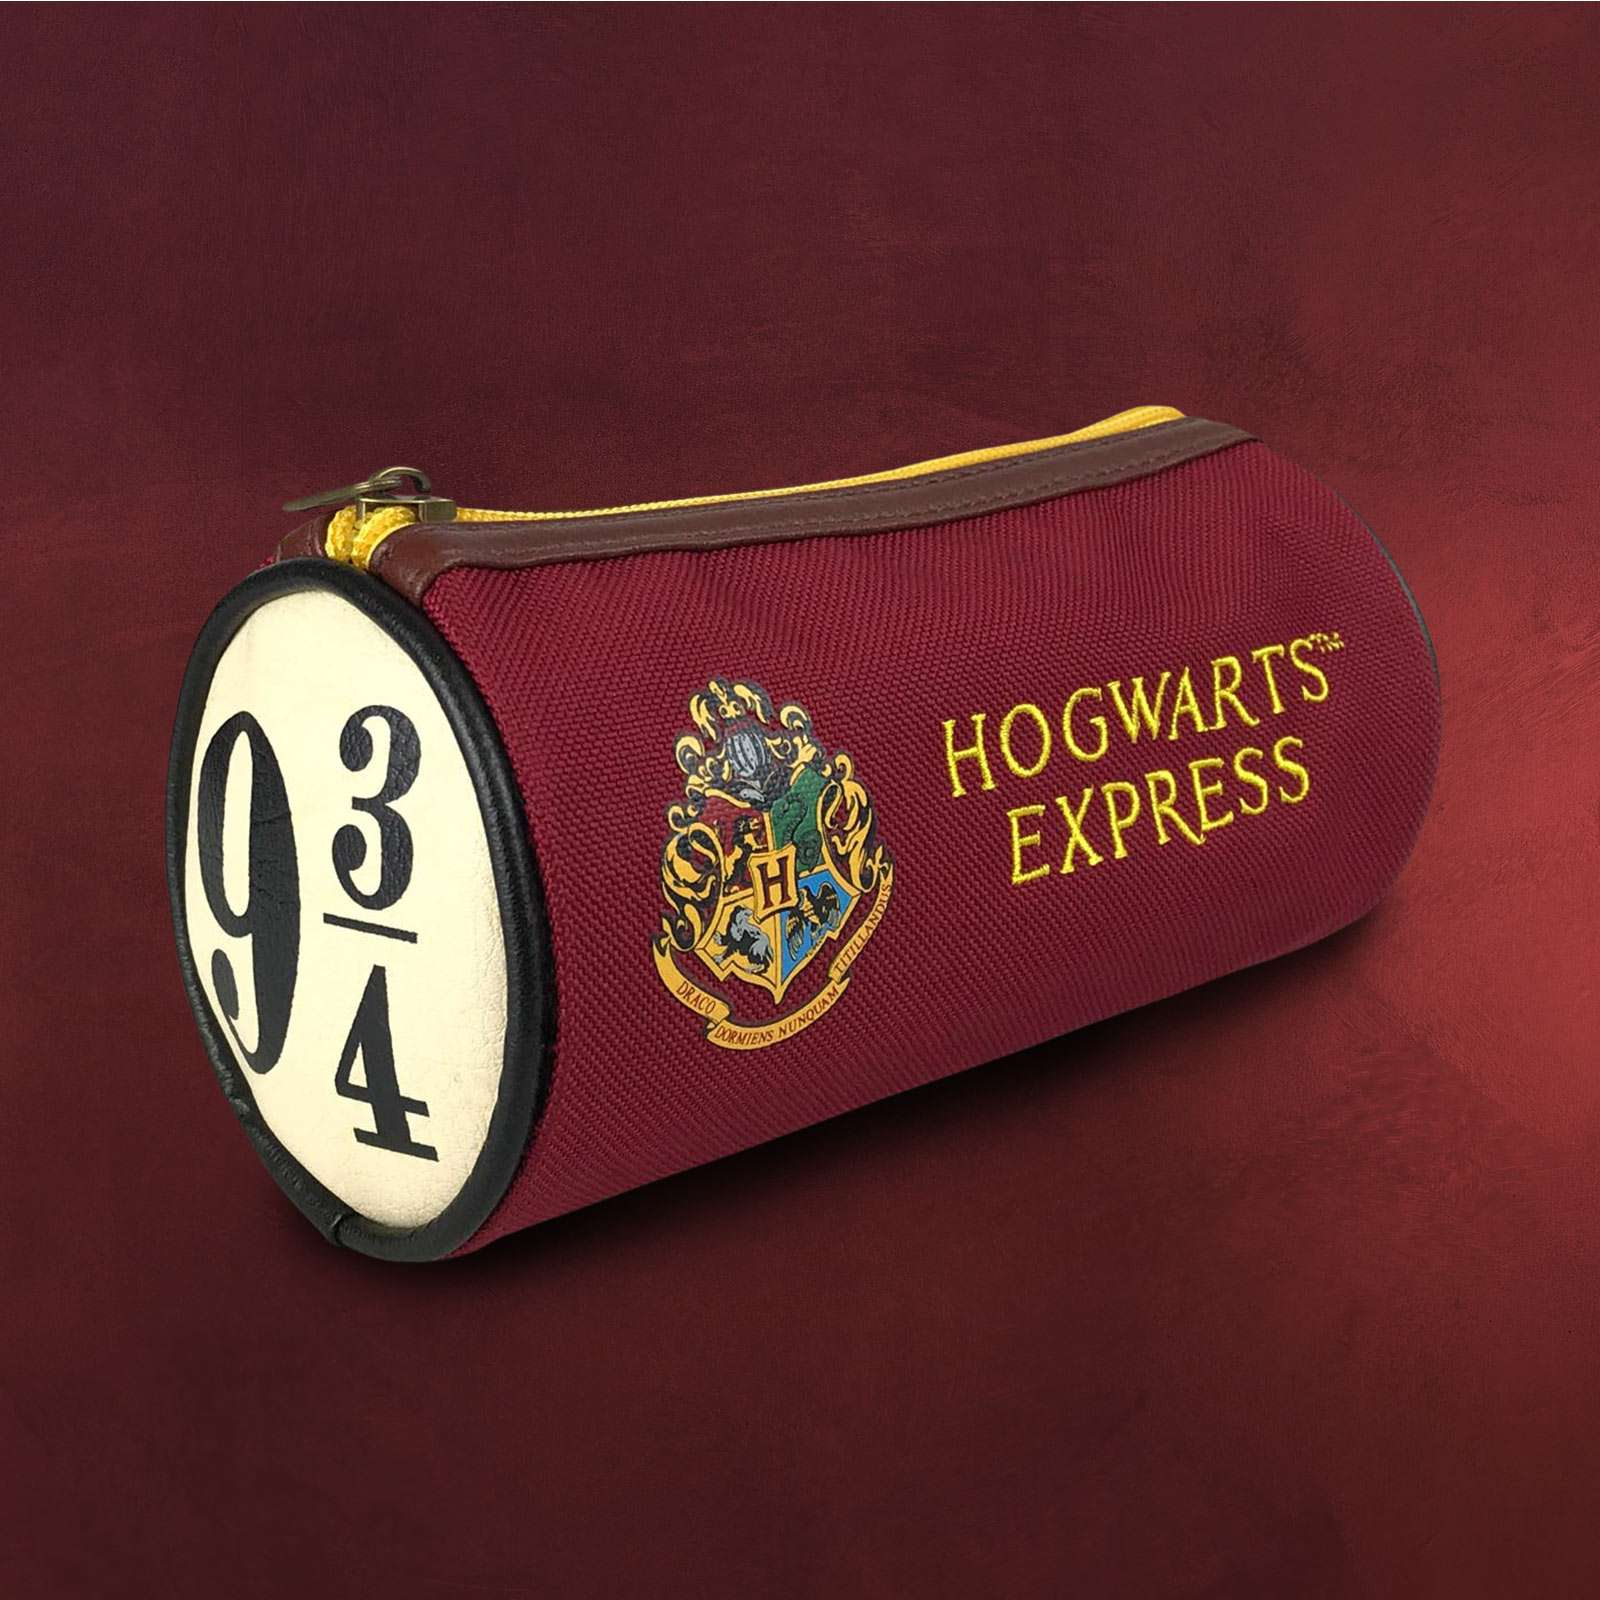 Harry Potter Hogwarts Wappen Bettwäsche Elbenwald Harry Potter Hogwarts Express 9 3 4 Kosmetiktasche